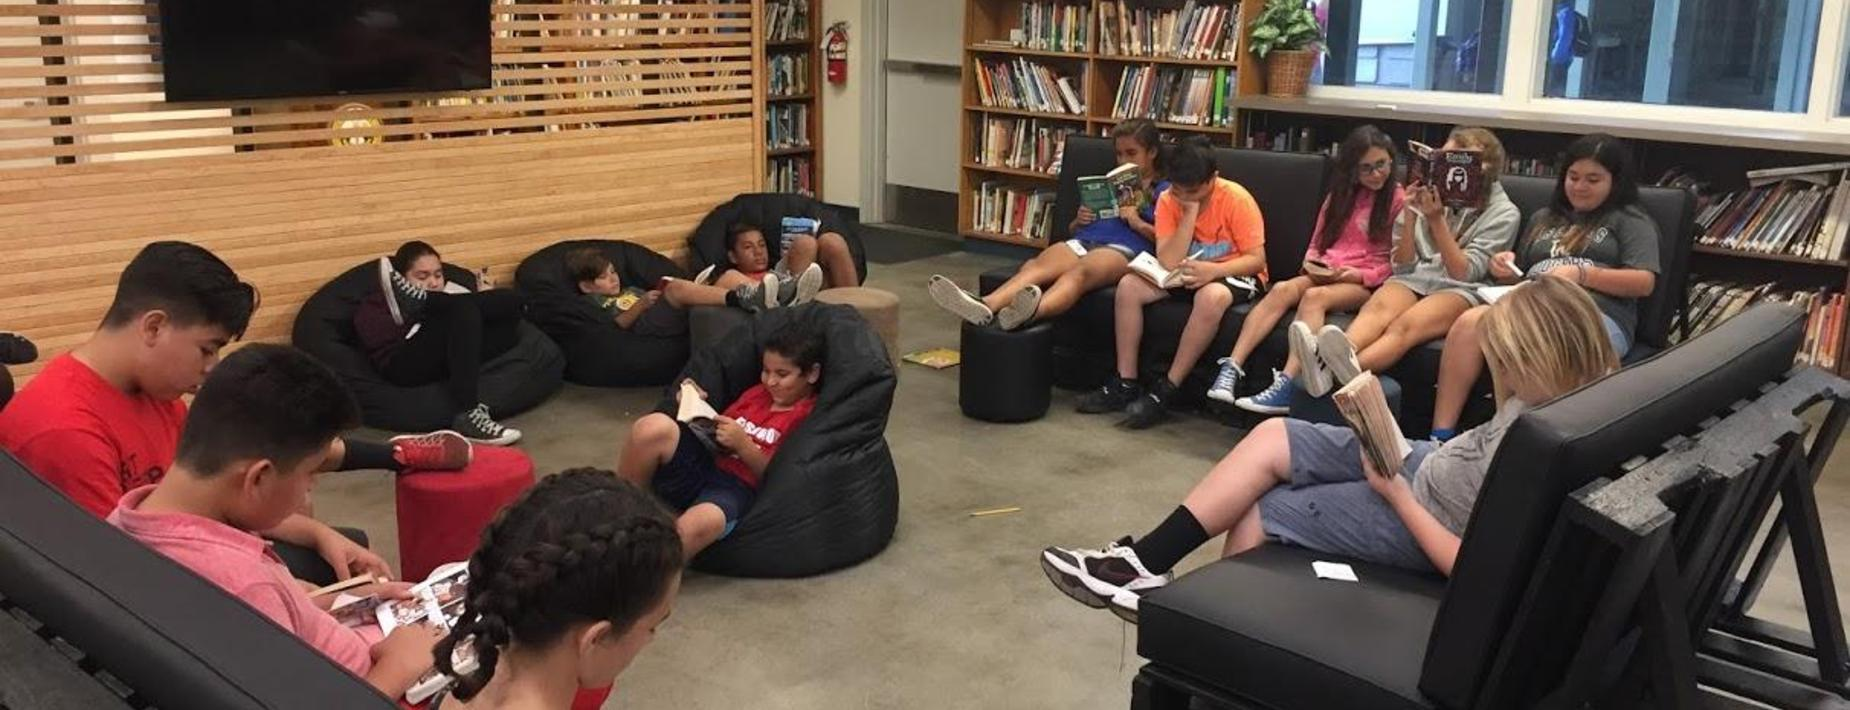 Sandburg Library 'Learning Lounge'